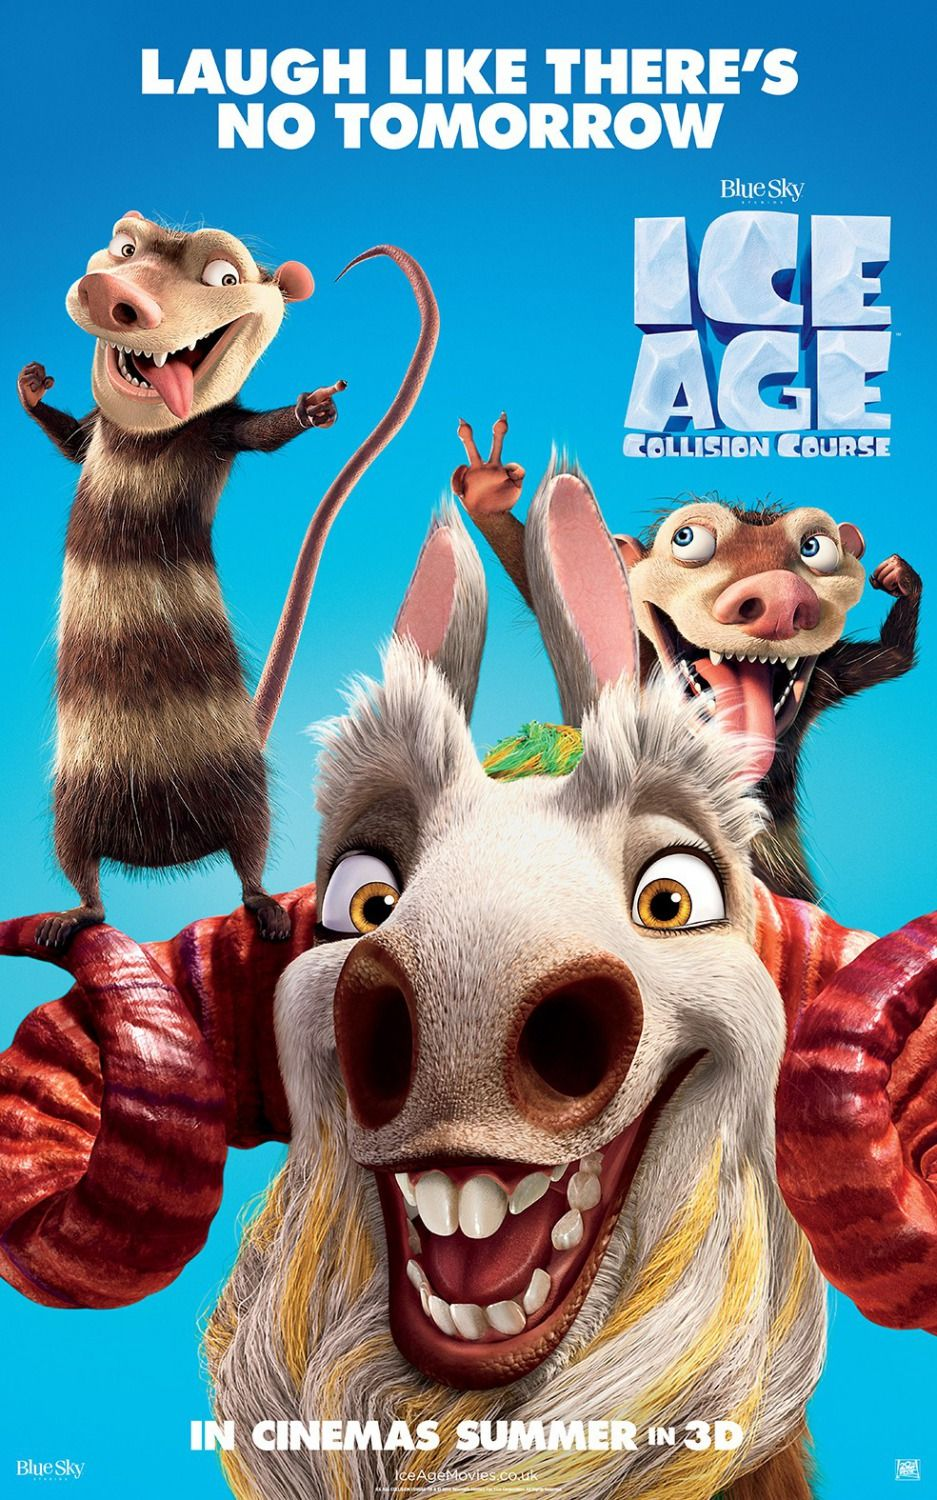 Return To The Main Poster Page For Ice Age 5 Movie Time In 2019